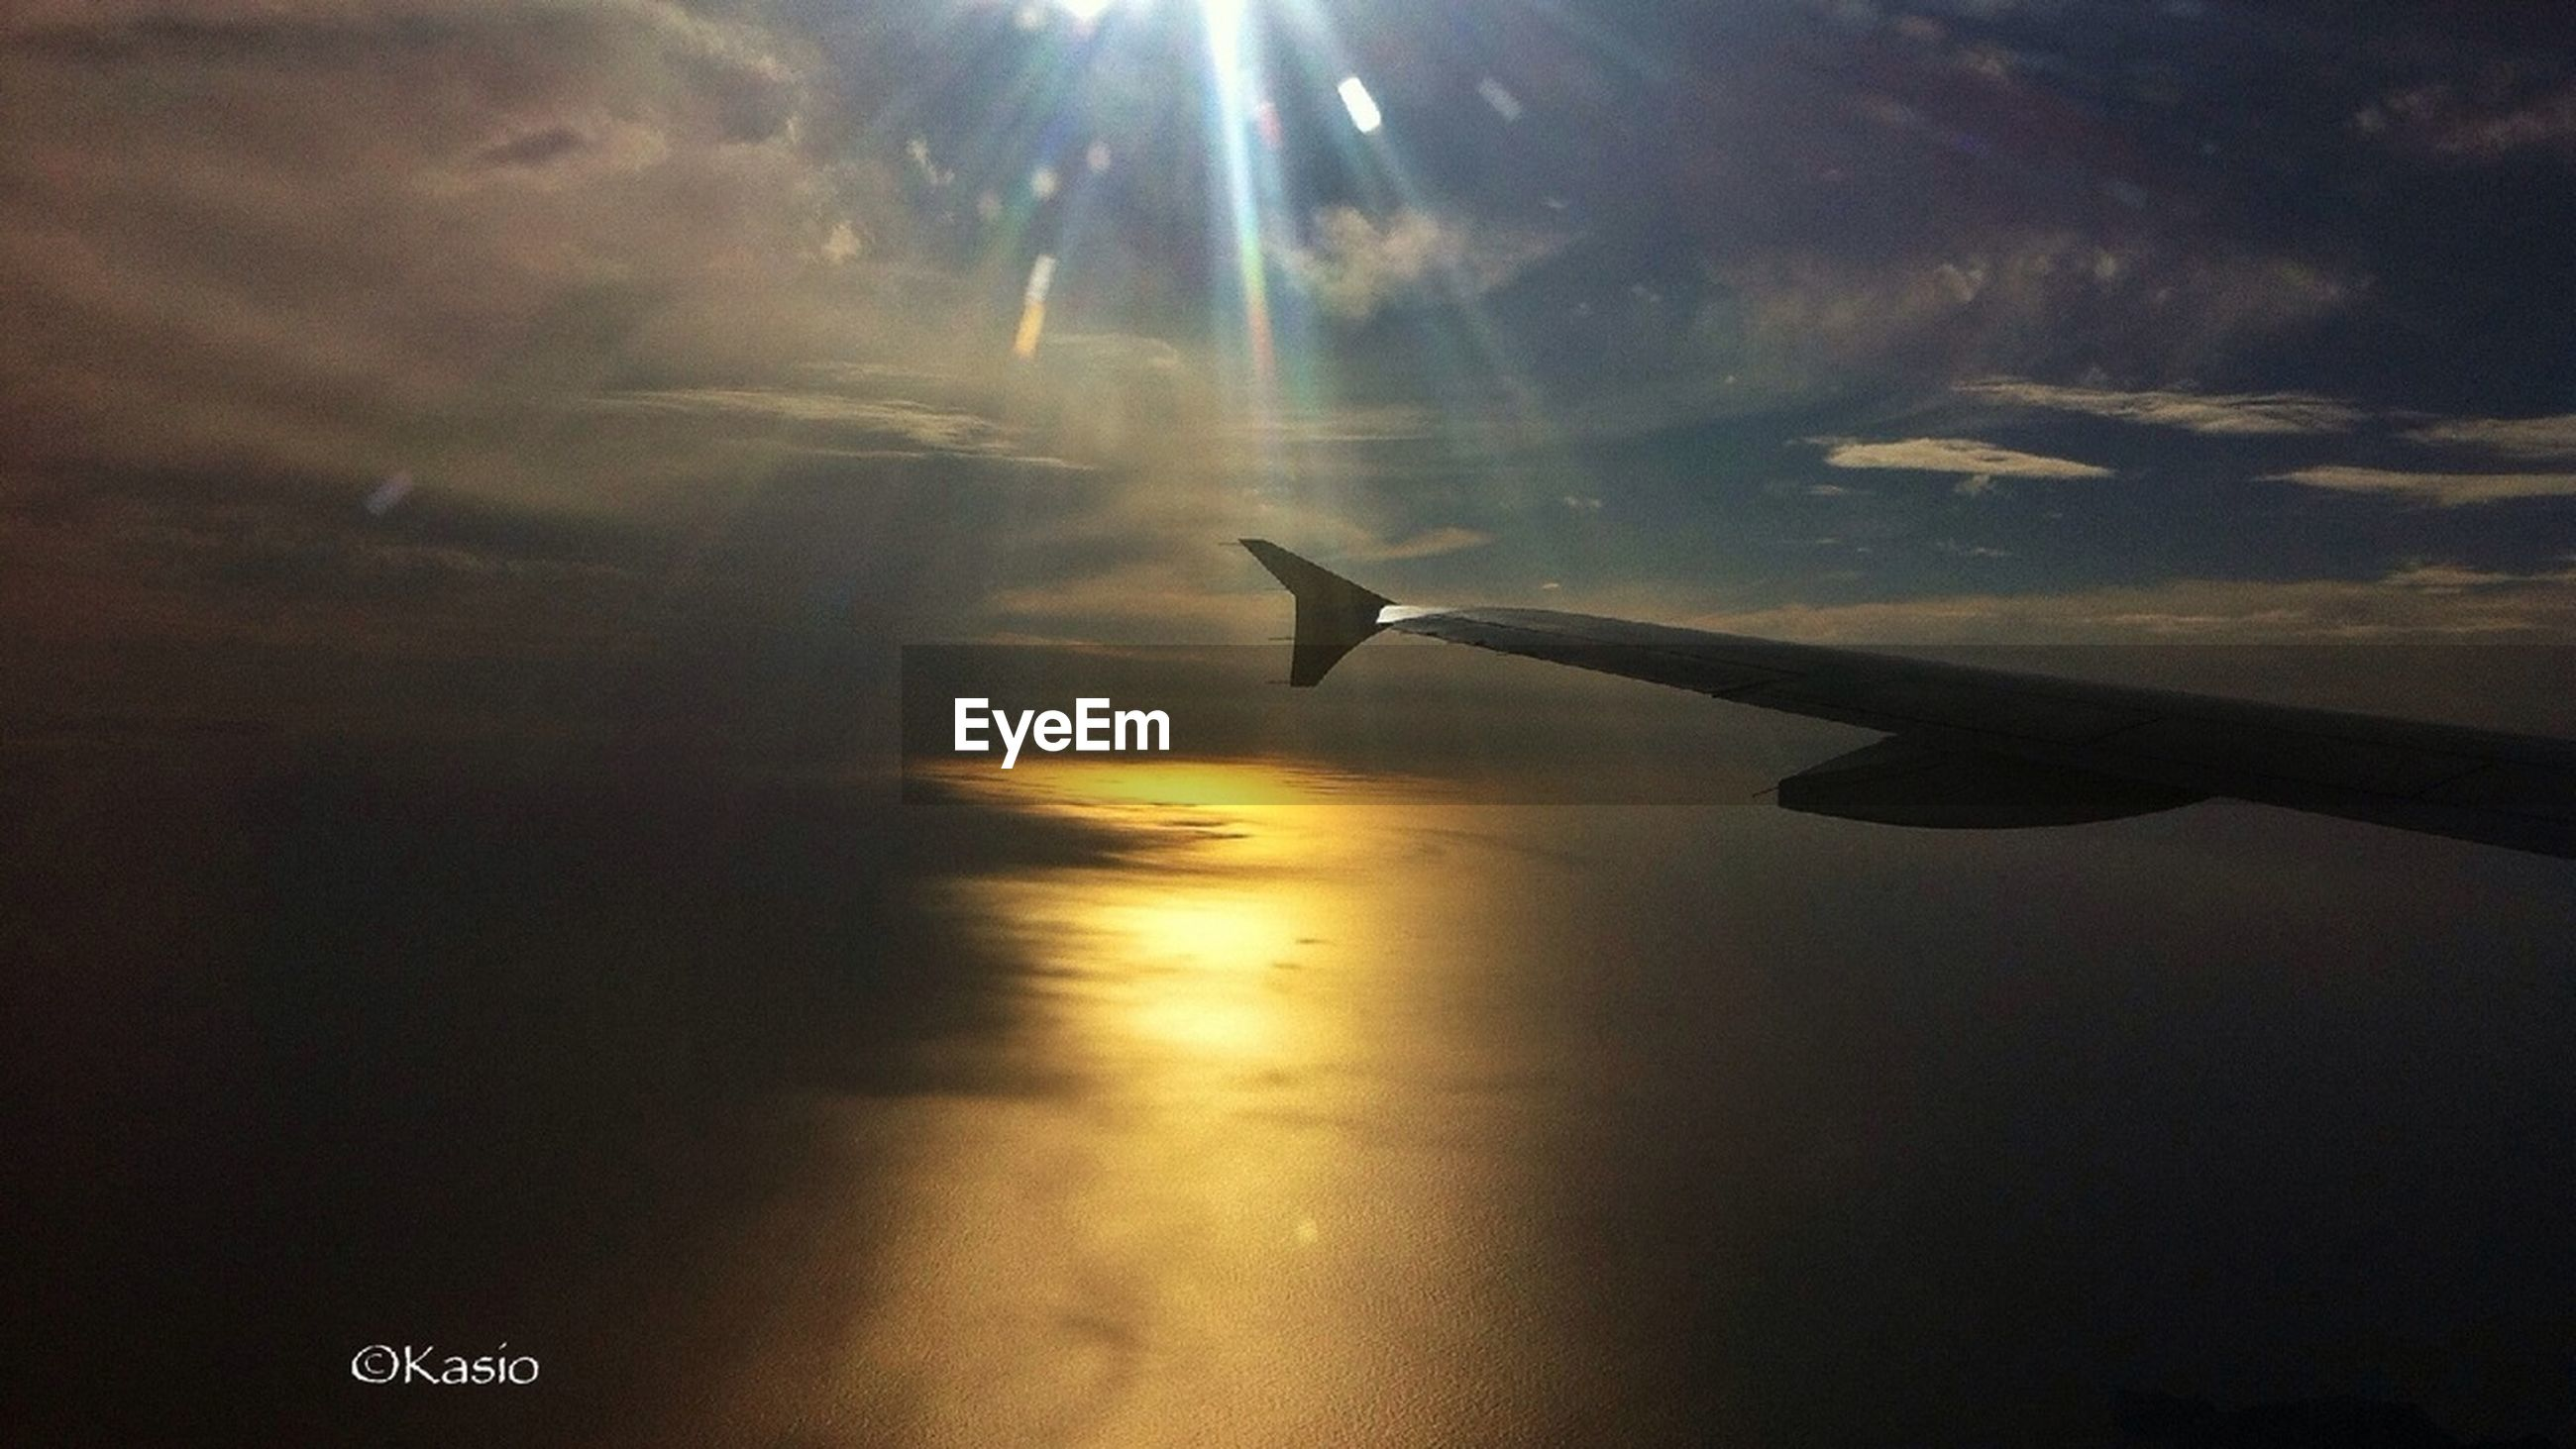 airplane, flying, transportation, aircraft wing, air vehicle, mode of transport, sun, sunset, sky, travel, mid-air, scenics, journey, on the move, sunlight, beauty in nature, nature, cloud - sky, part of, aerial view